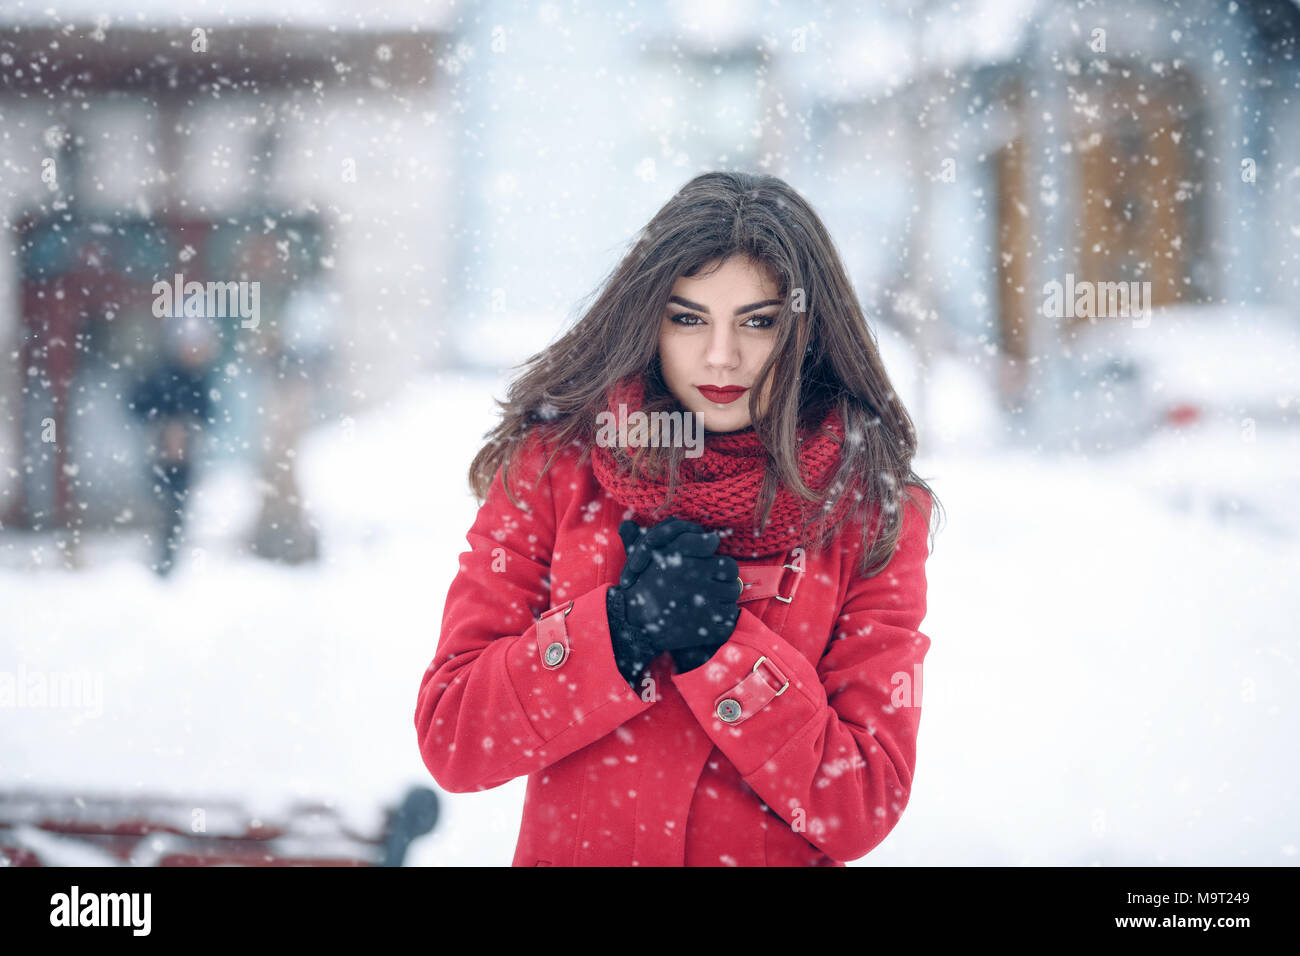 db33784eeb536 Winter portrait of young beautiful brunette woman wearing knitted snood and  red coat covered in snow. Snowing winter beauty fashion concept. snowing